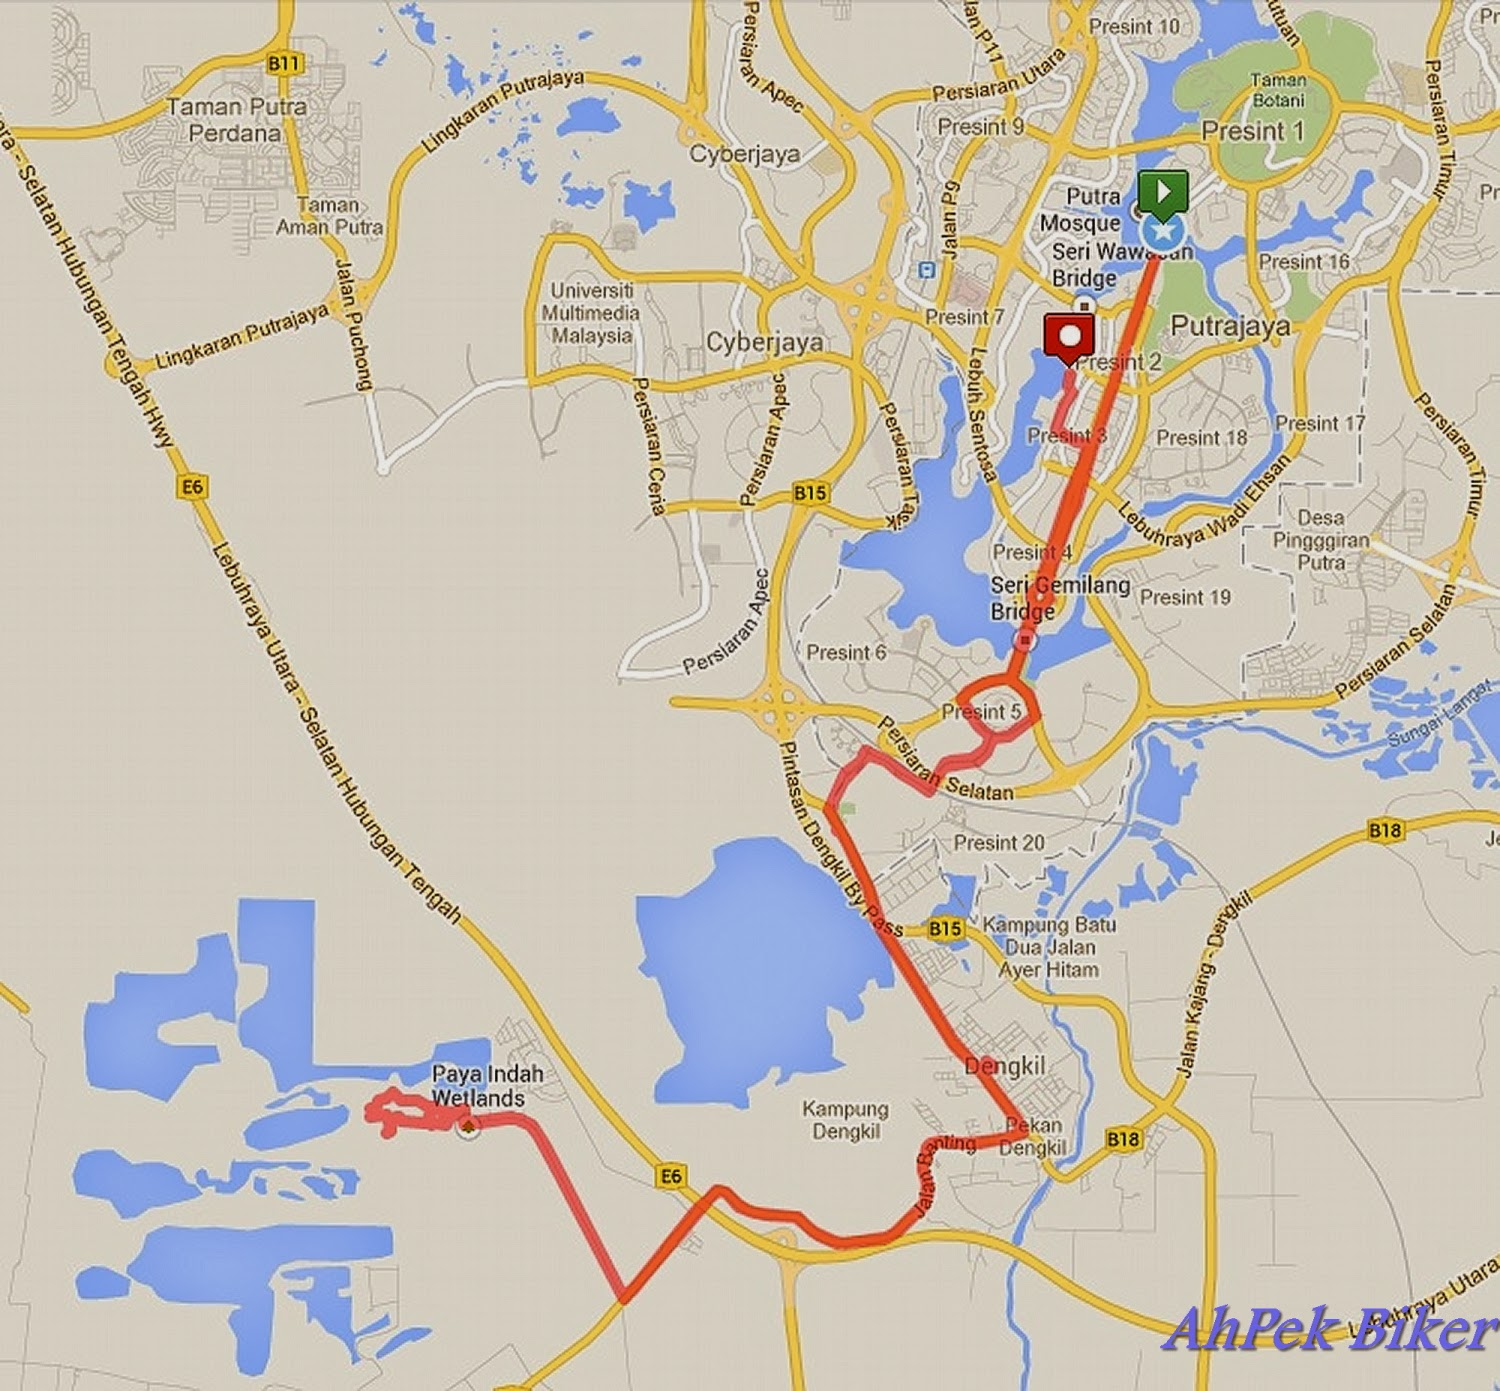 putrajaya how to get there